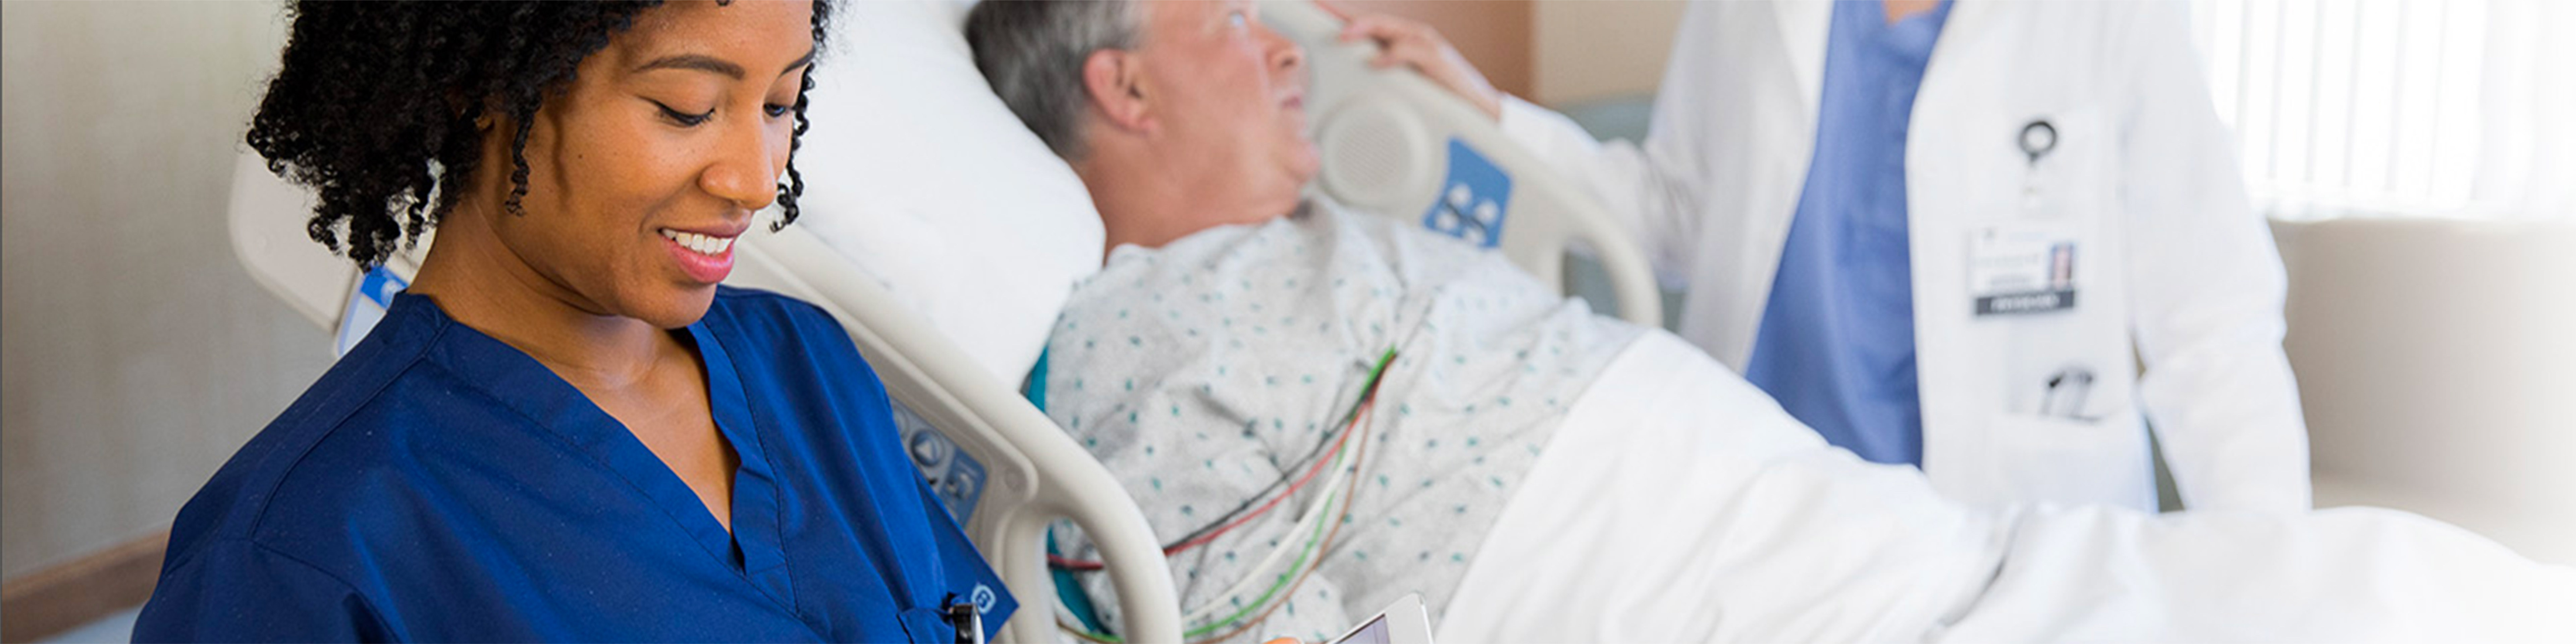 Reduce Variability of Care: Factors, Benefits and Methods